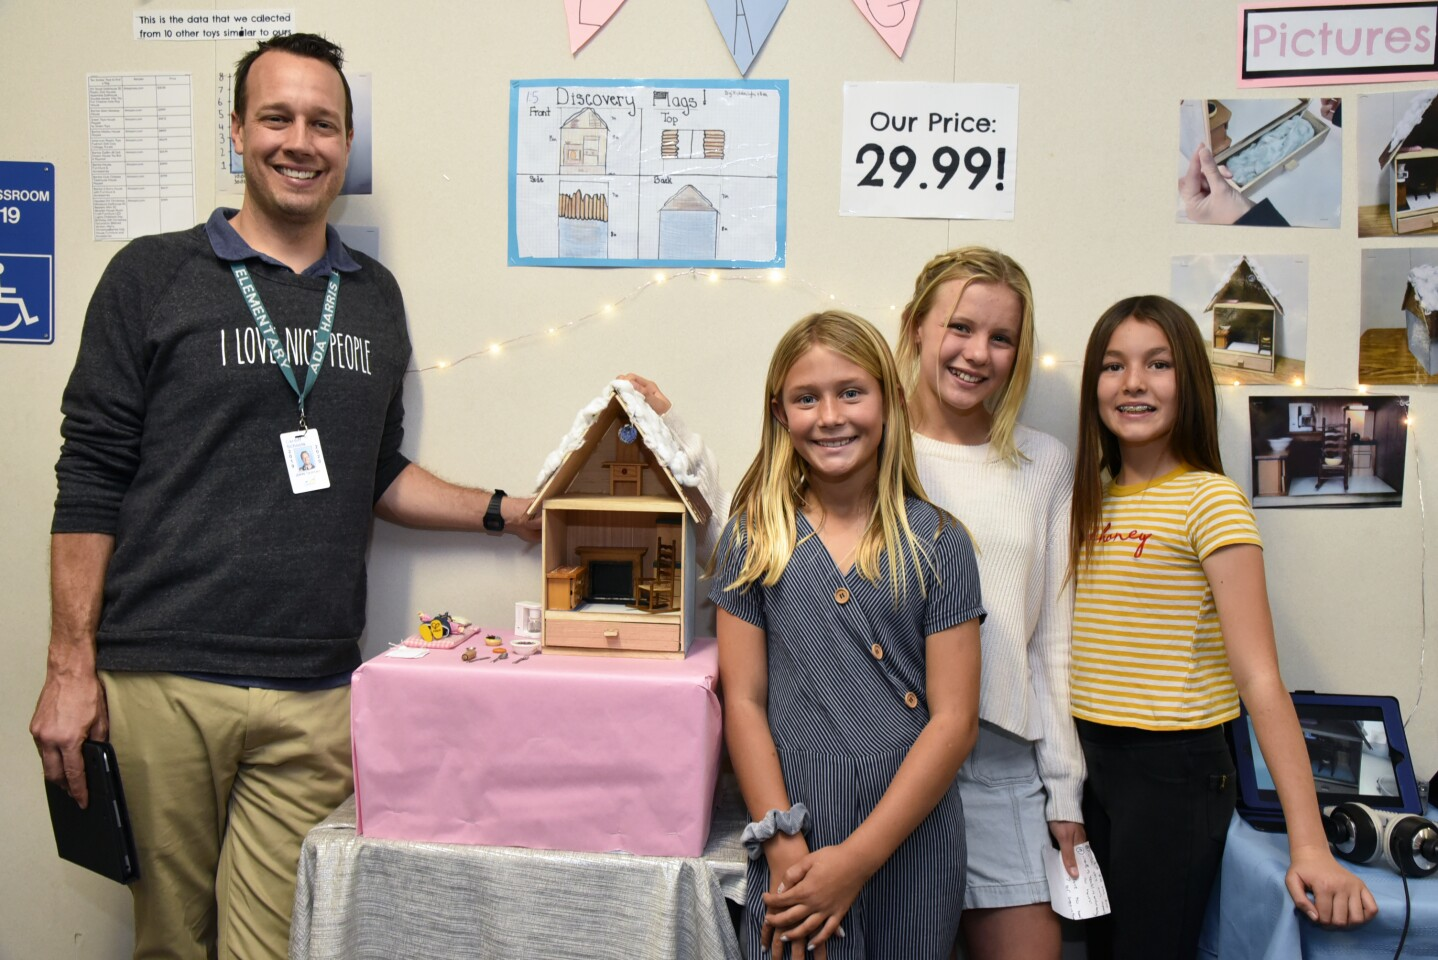 6th Grade teacher John Tiersma and 'Discovery Flags', with student creators Lyla, Ava, and Natalie